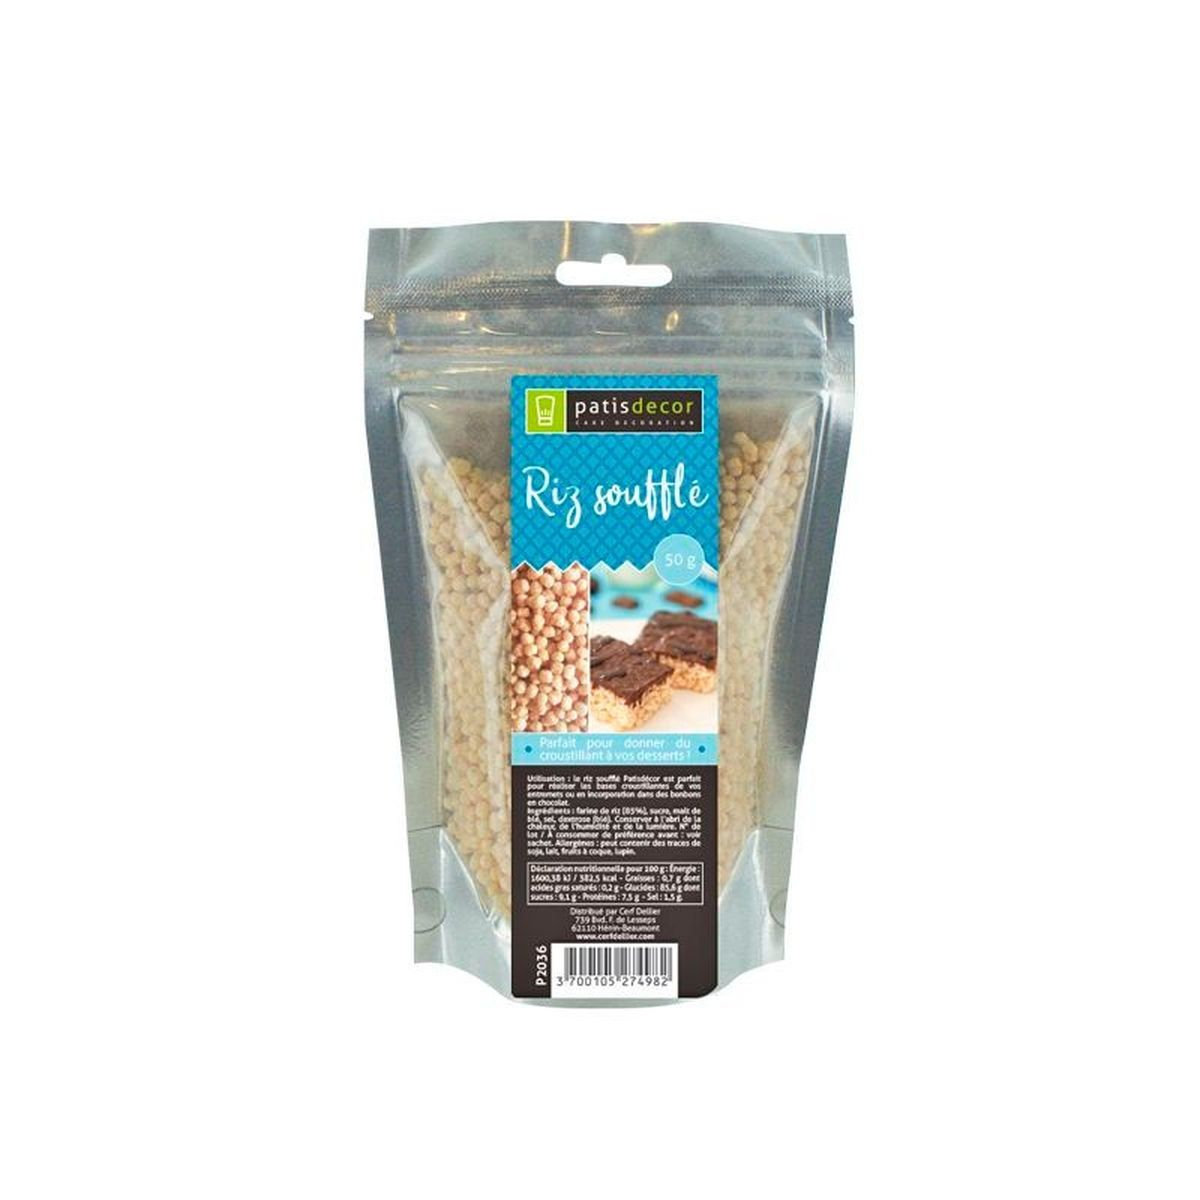 Riz soufflé Patisdecor 50g - Patisdecor